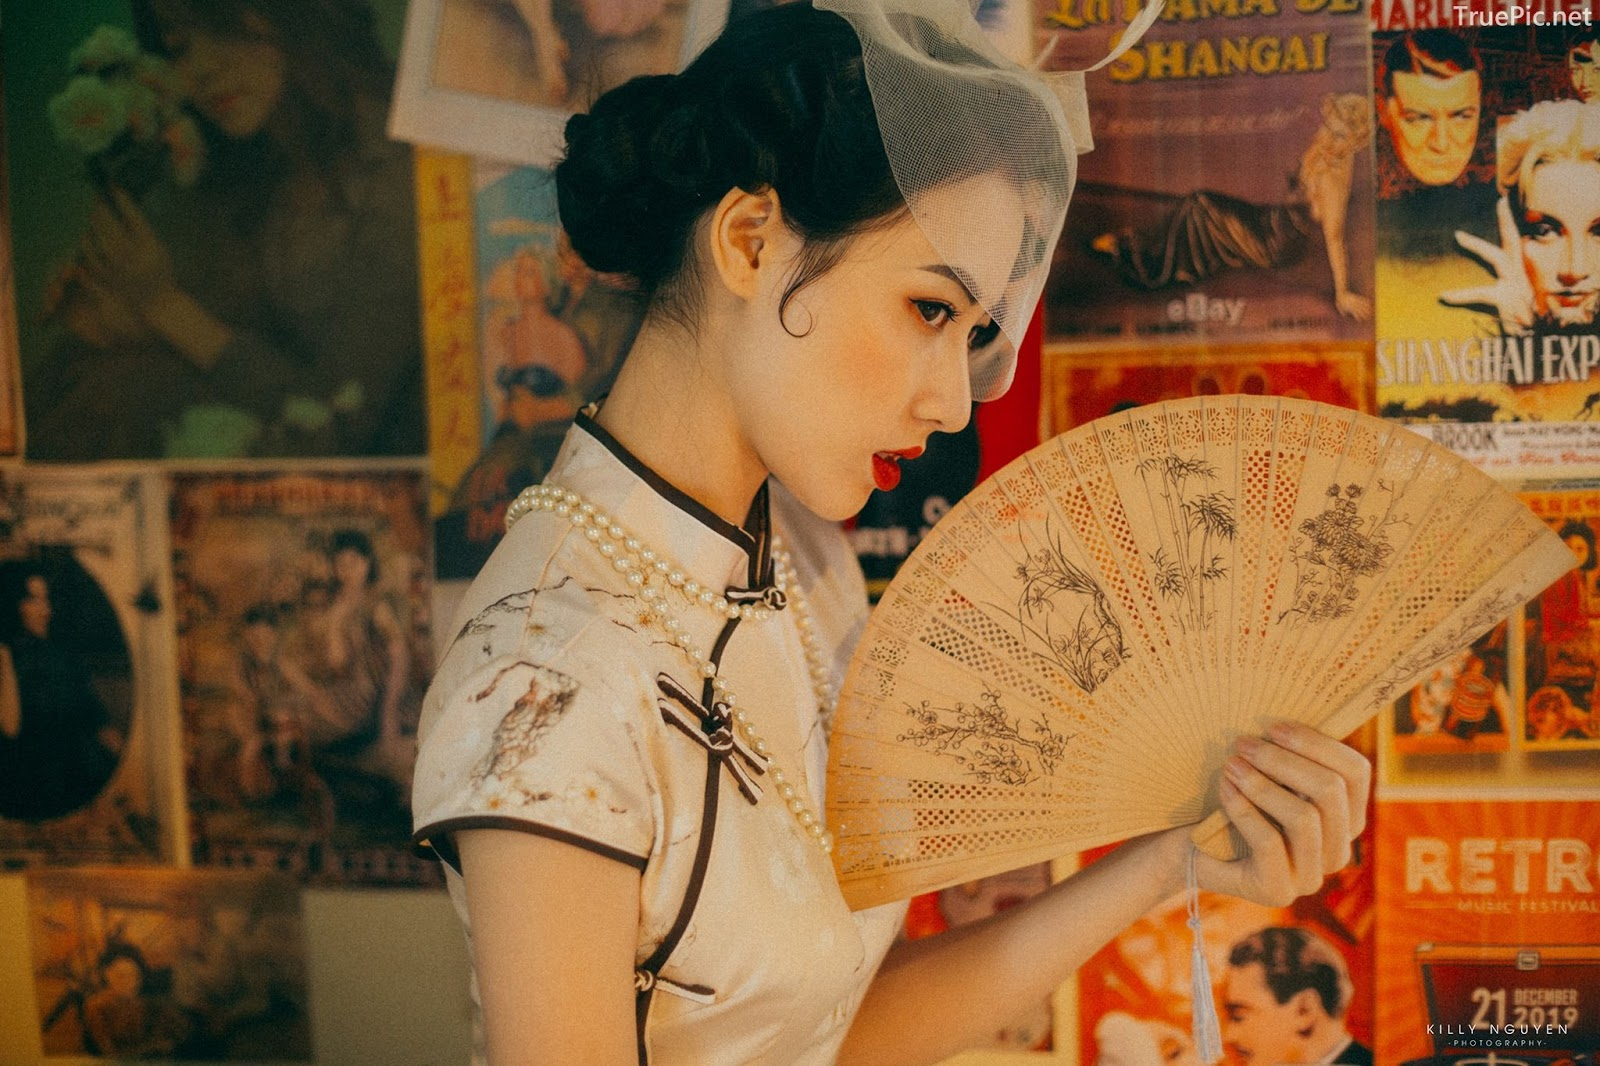 Vietnamese model Lan Huong - Lost in ShangHai - Photo by Killy Nguyen - TruePic.net - Picture 9